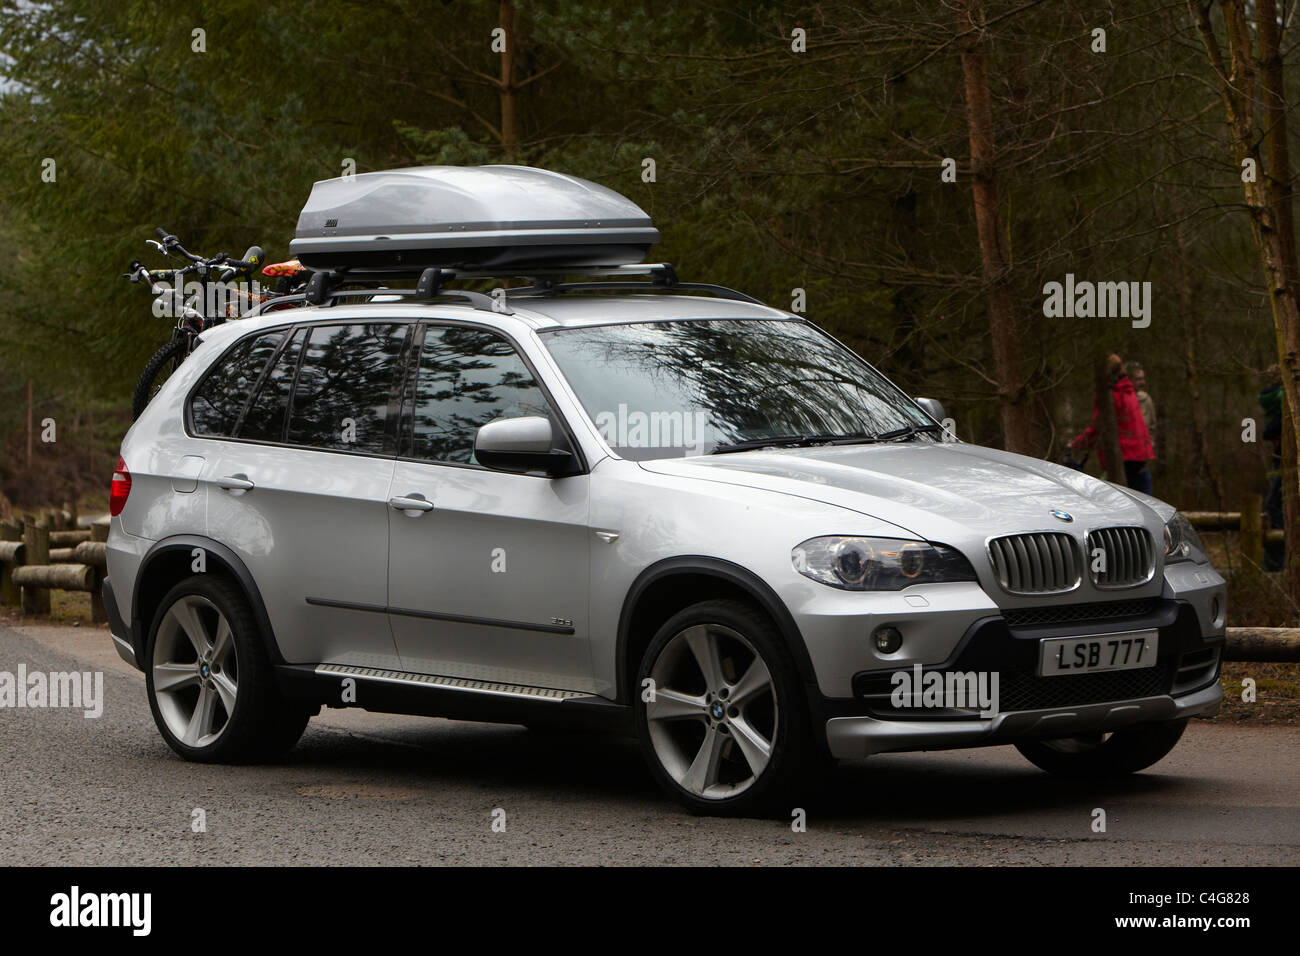 Silver BMW X5 with Car Roof Rack Luggage - Stock Image